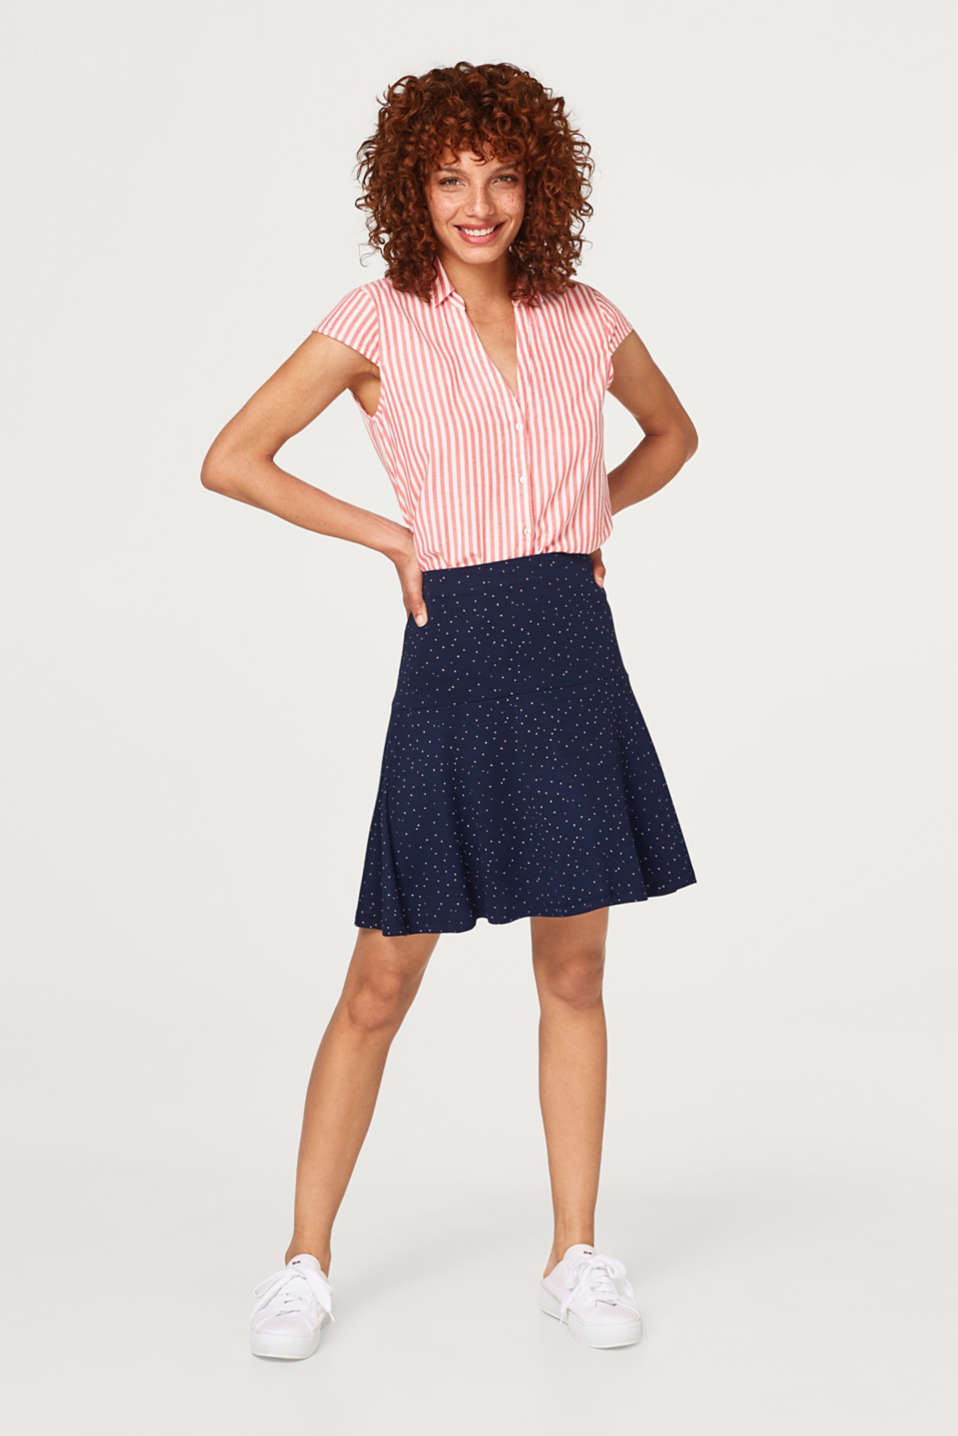 Swirling jersey skirt with stretch